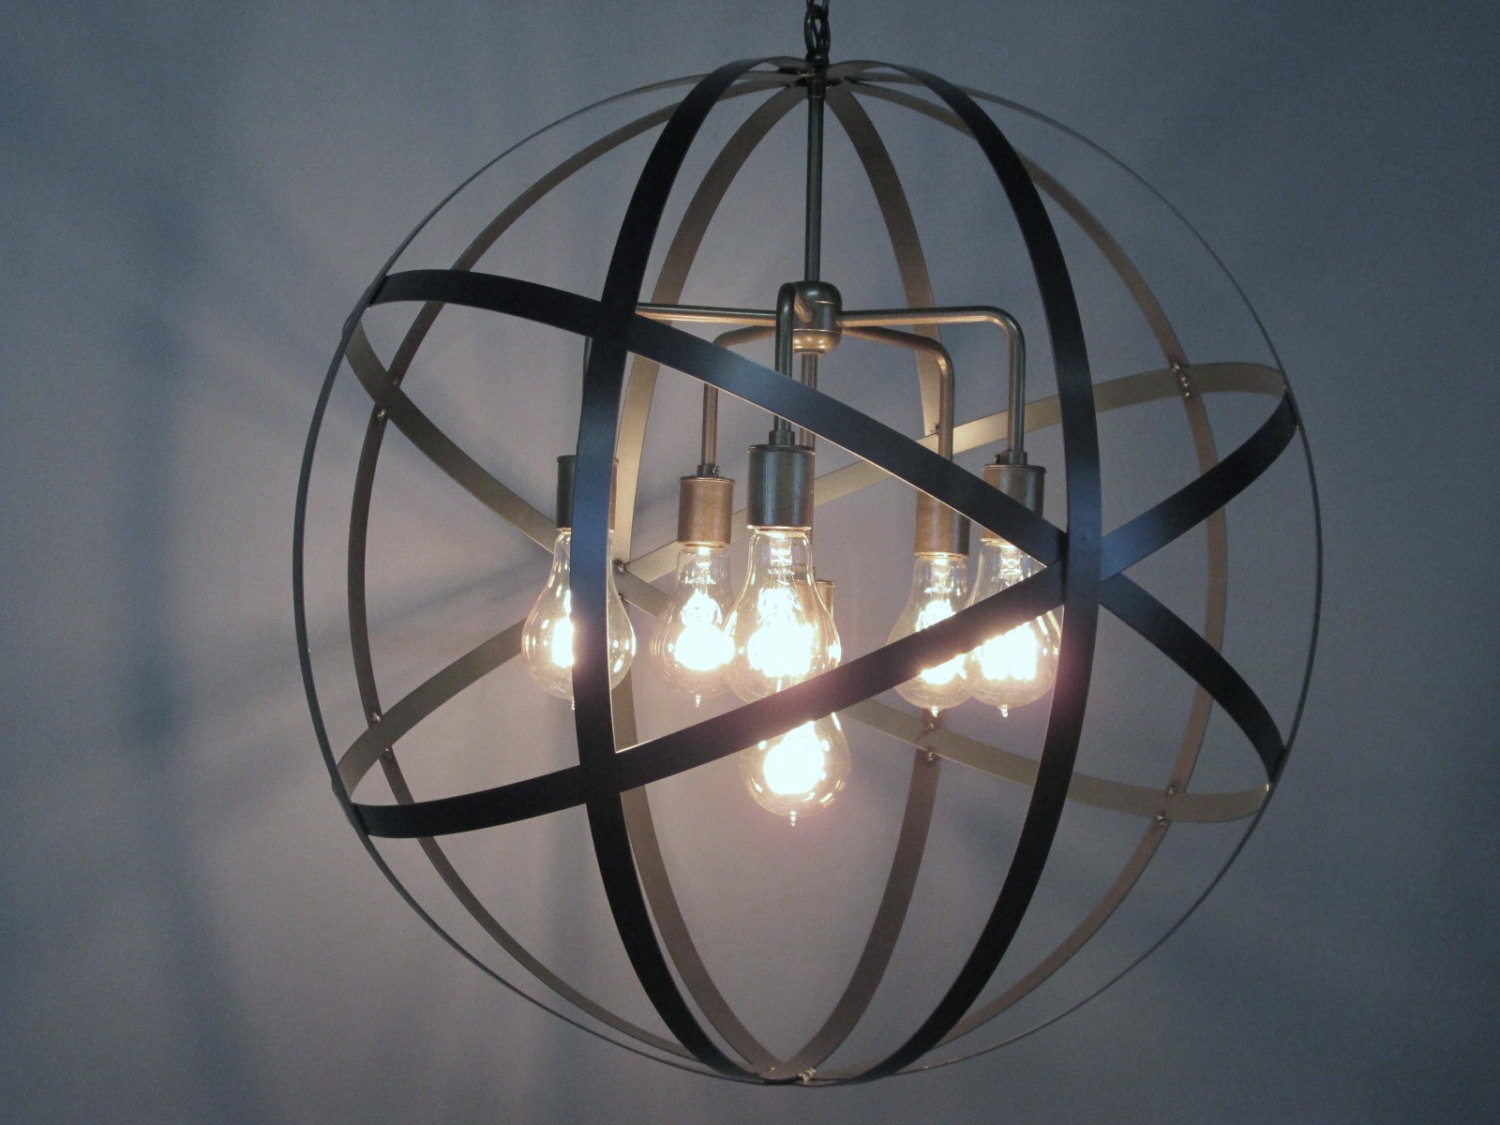 Attractive sphere chandelier metal orb chandelier with interesting Cheap Price for your Home Lighting